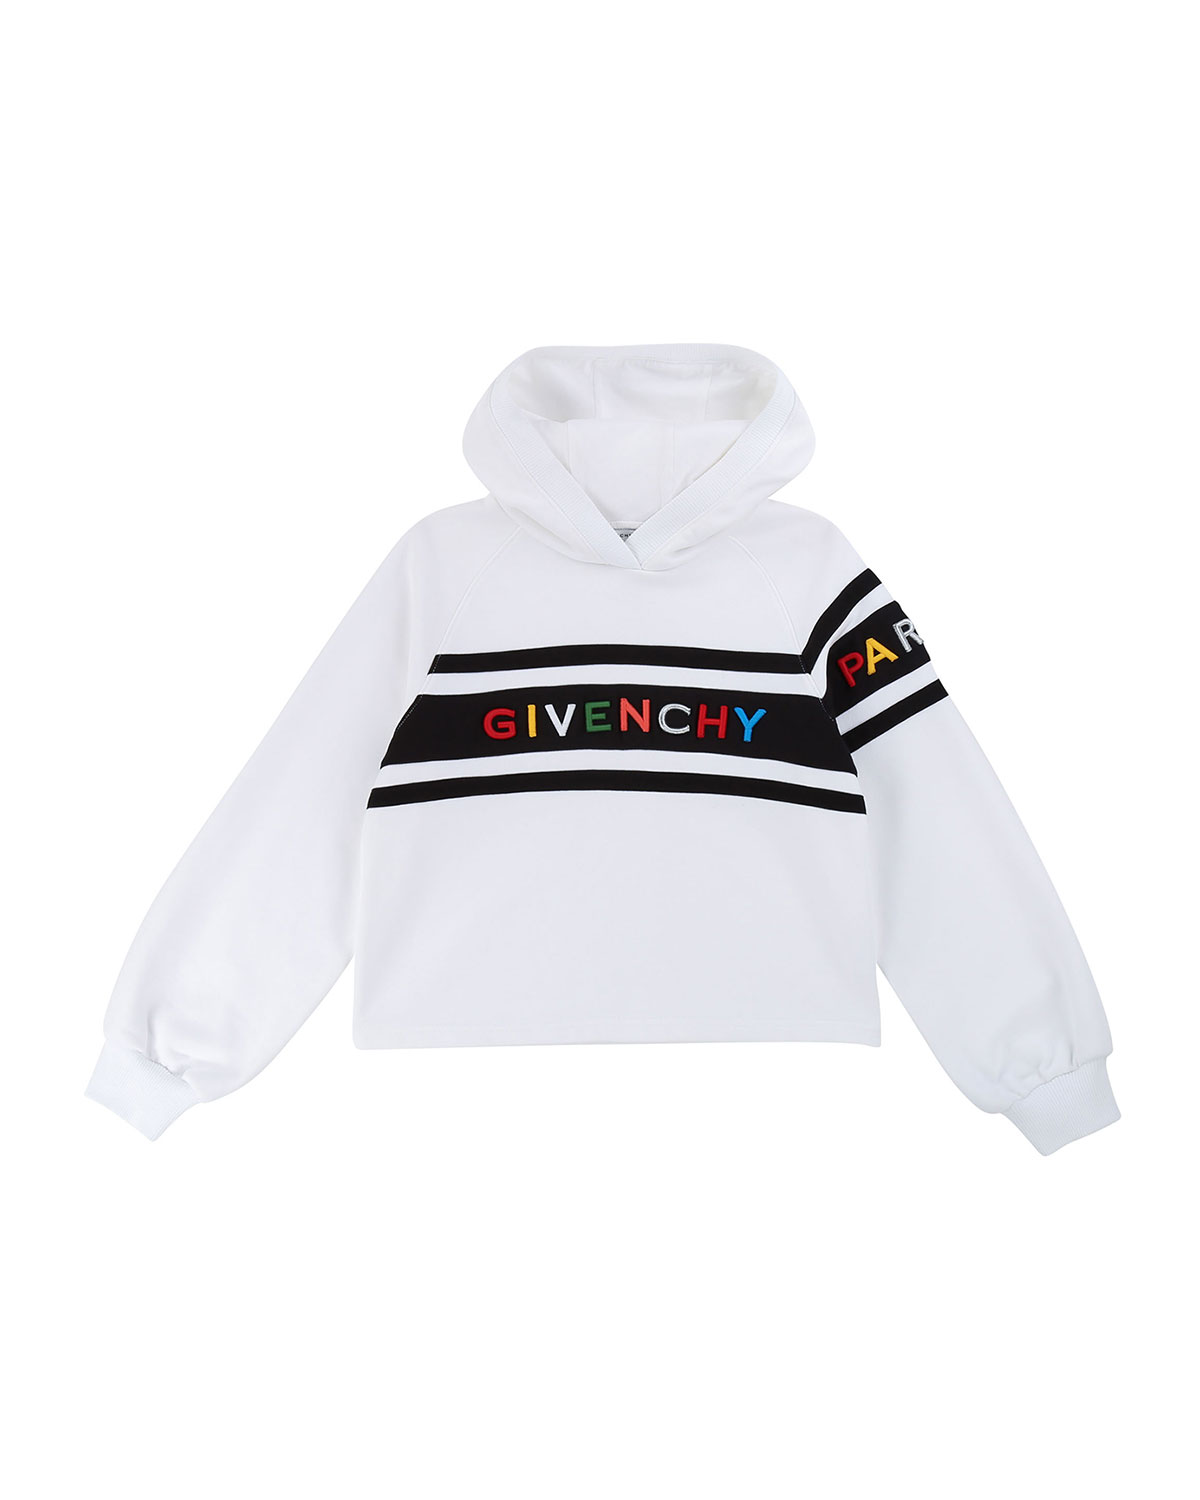 Givenchy Girl's Hooded Sweatshirt w/ Multicolor Logo Text, Size 12-14